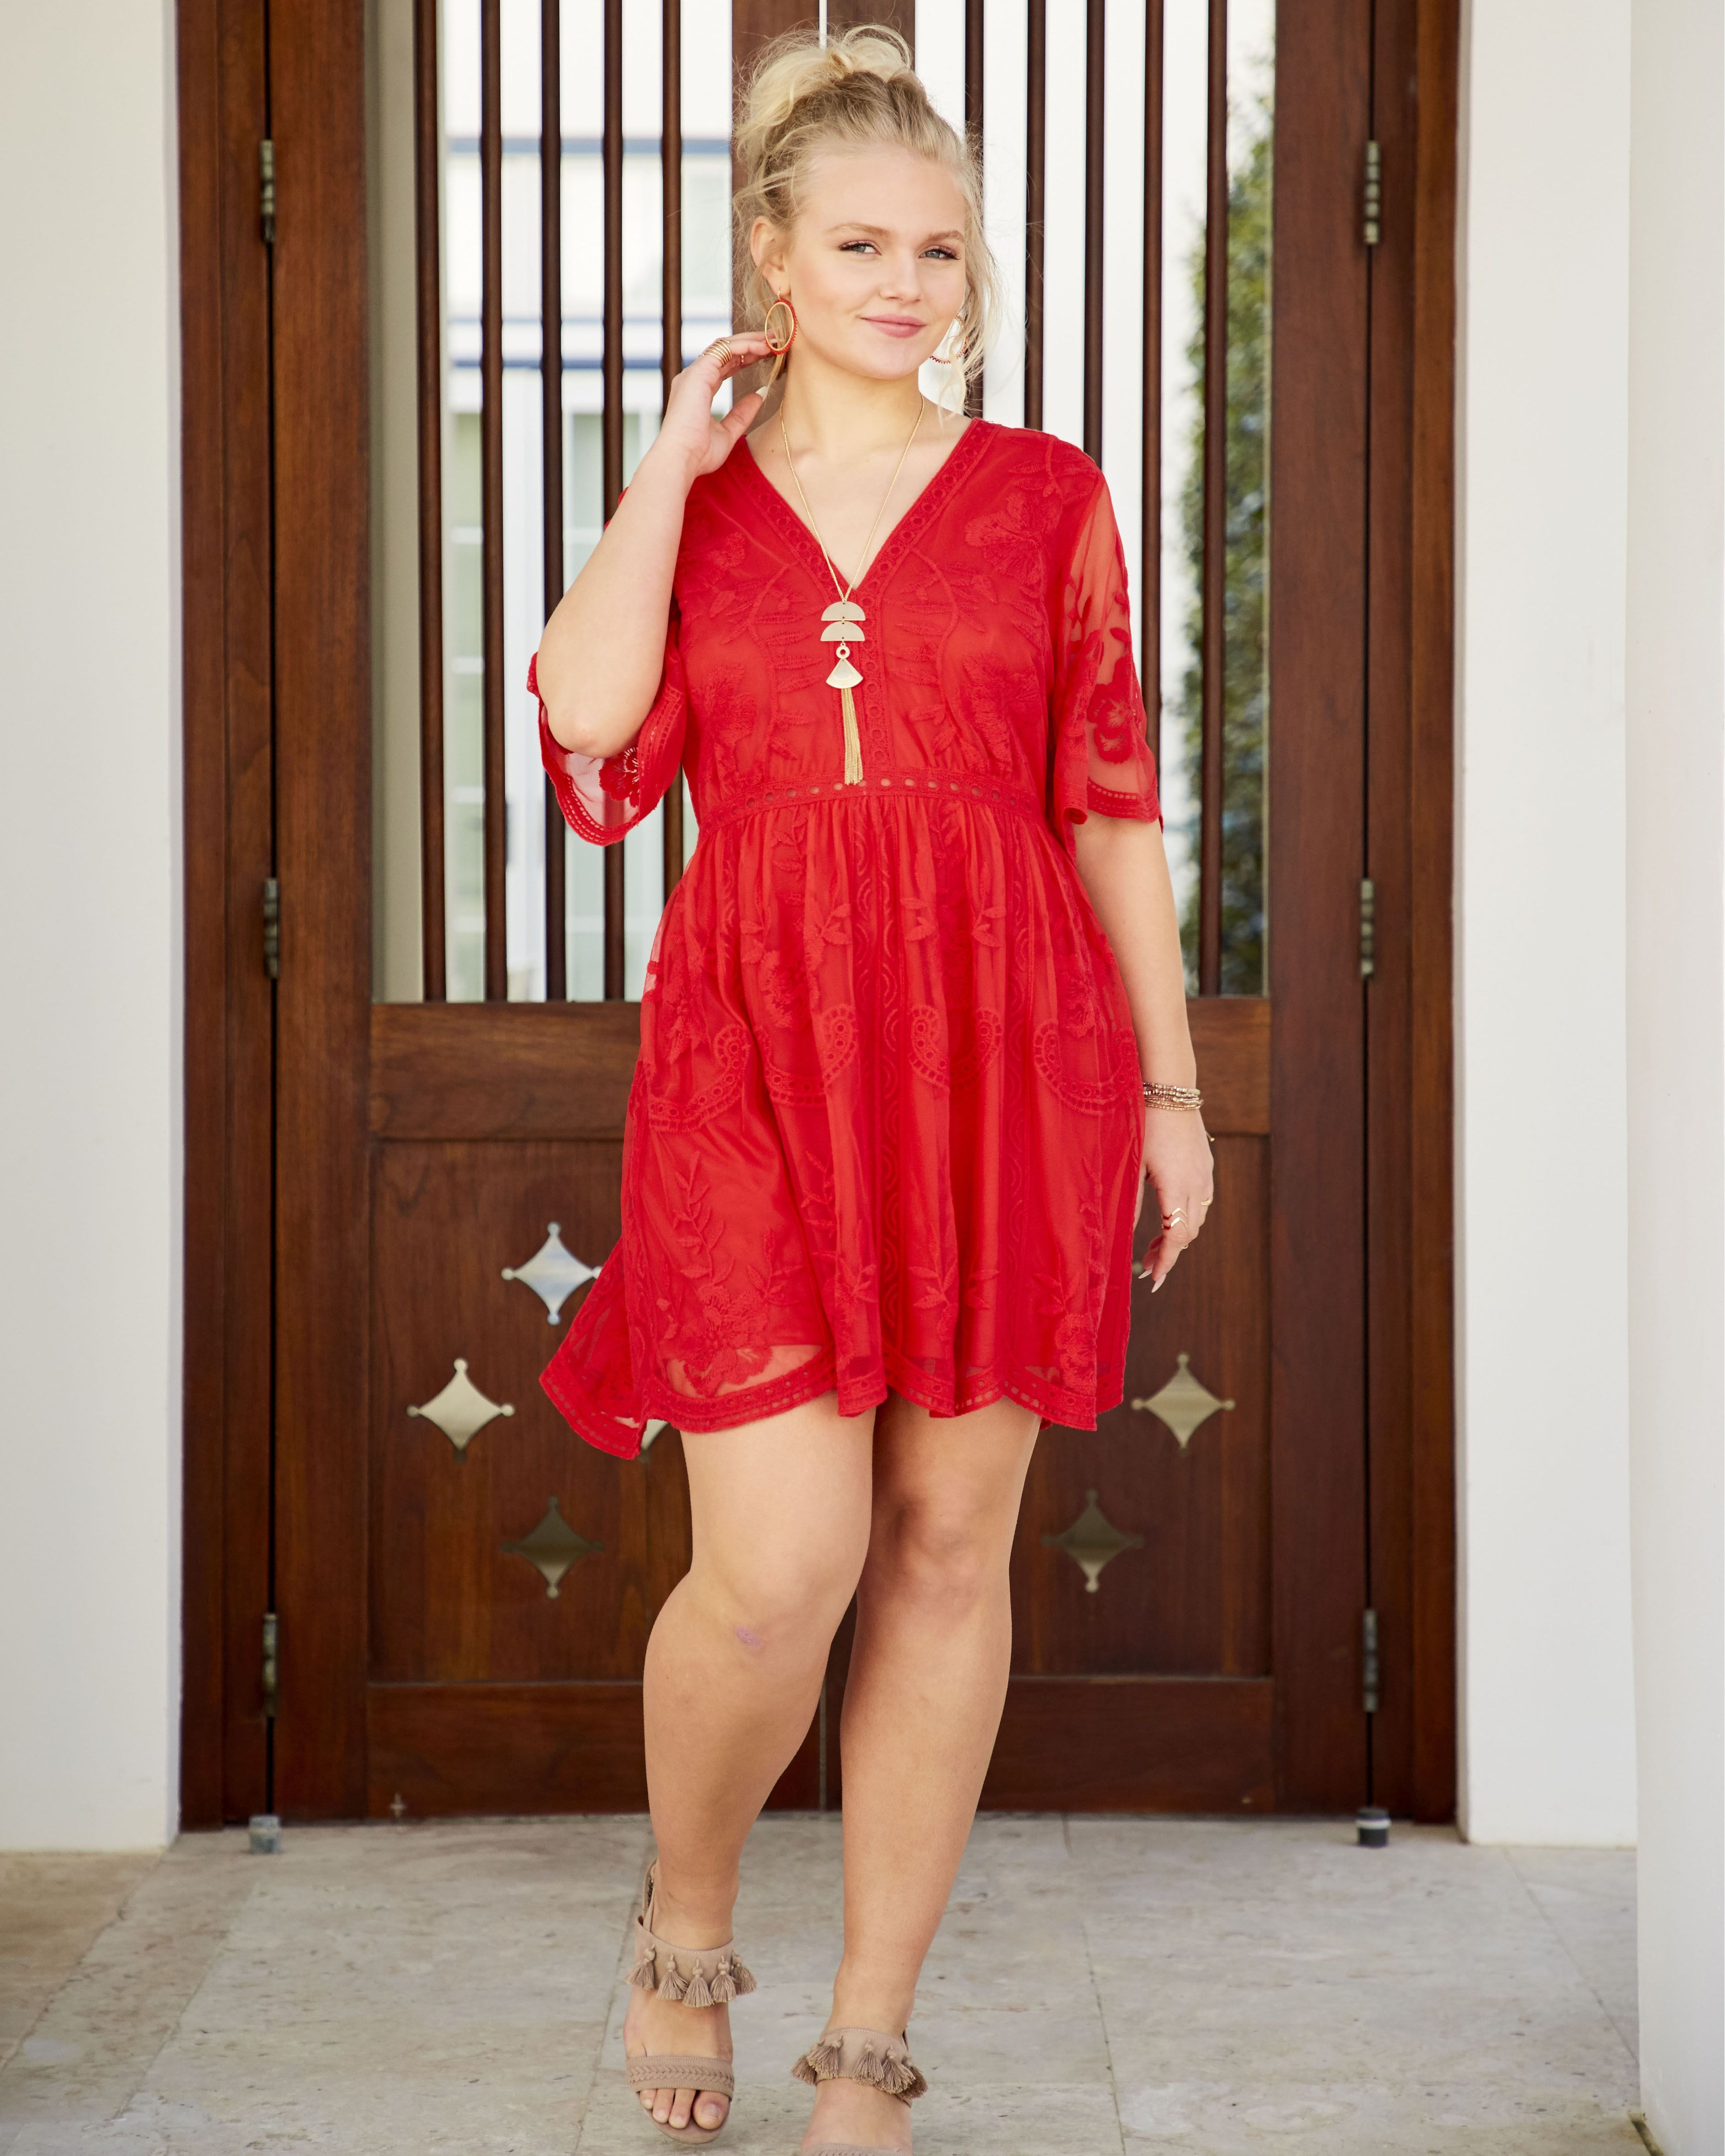 When It S Hot Out Wear Something Red And Sassy This Sefton Dress Is The Perfect Summer Red And Comes As A Maxi Dresses Womens Dresses Plus Size Maxi Dresses [ 4894 x 3915 Pixel ]